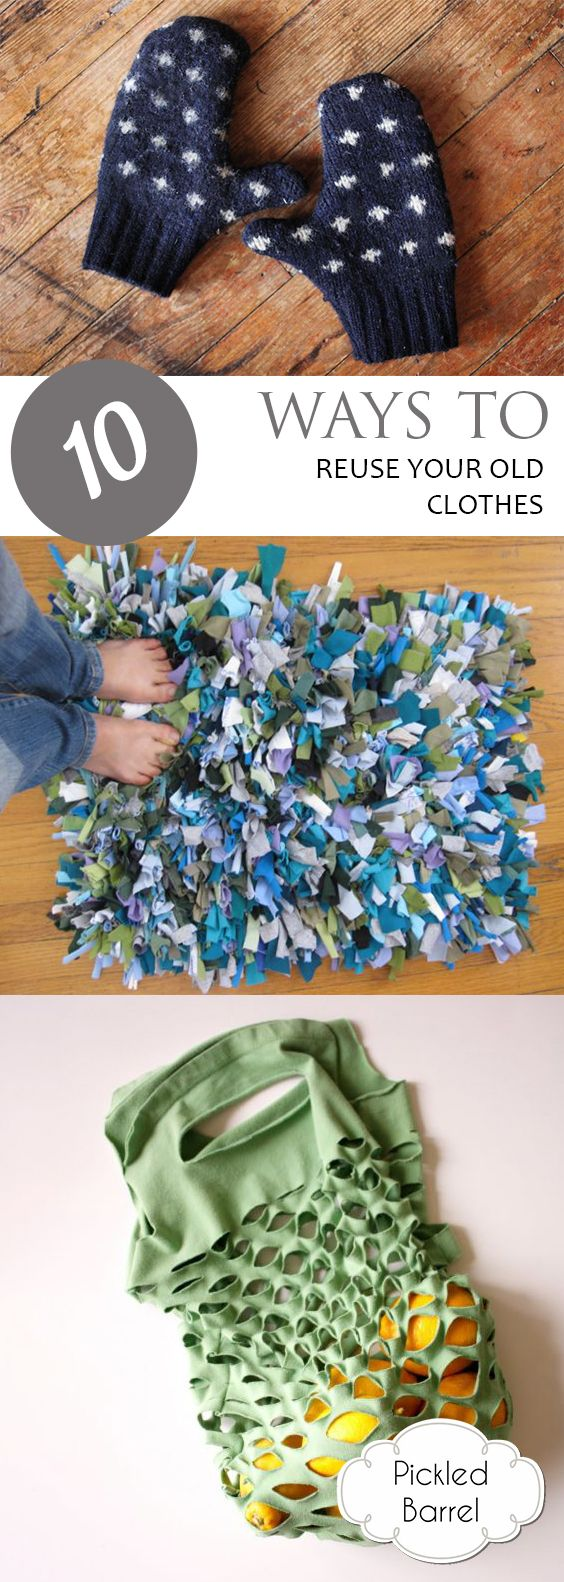 10 Ways to Reuse Your Old Clothes| How to Reuse Old Clothes, Things to Do With Old Clothes, How to Reuse Clothing, How to Craft With Old Clothing, Crafting With Old Clothing, Easy Crafts, Quick Craft Projects